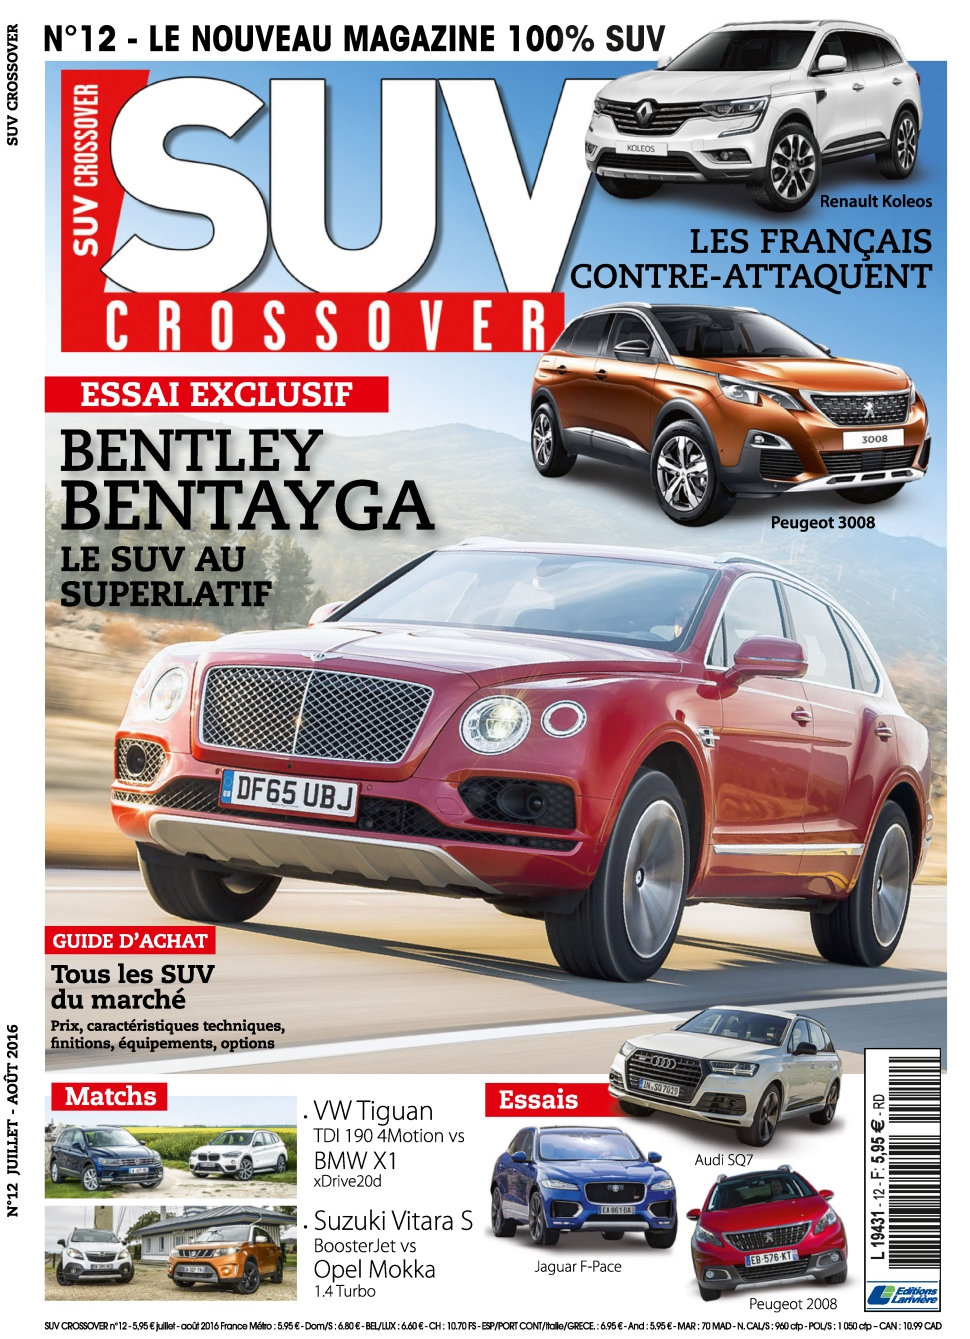 Suv Crossover N°12 - Juillet/Aout